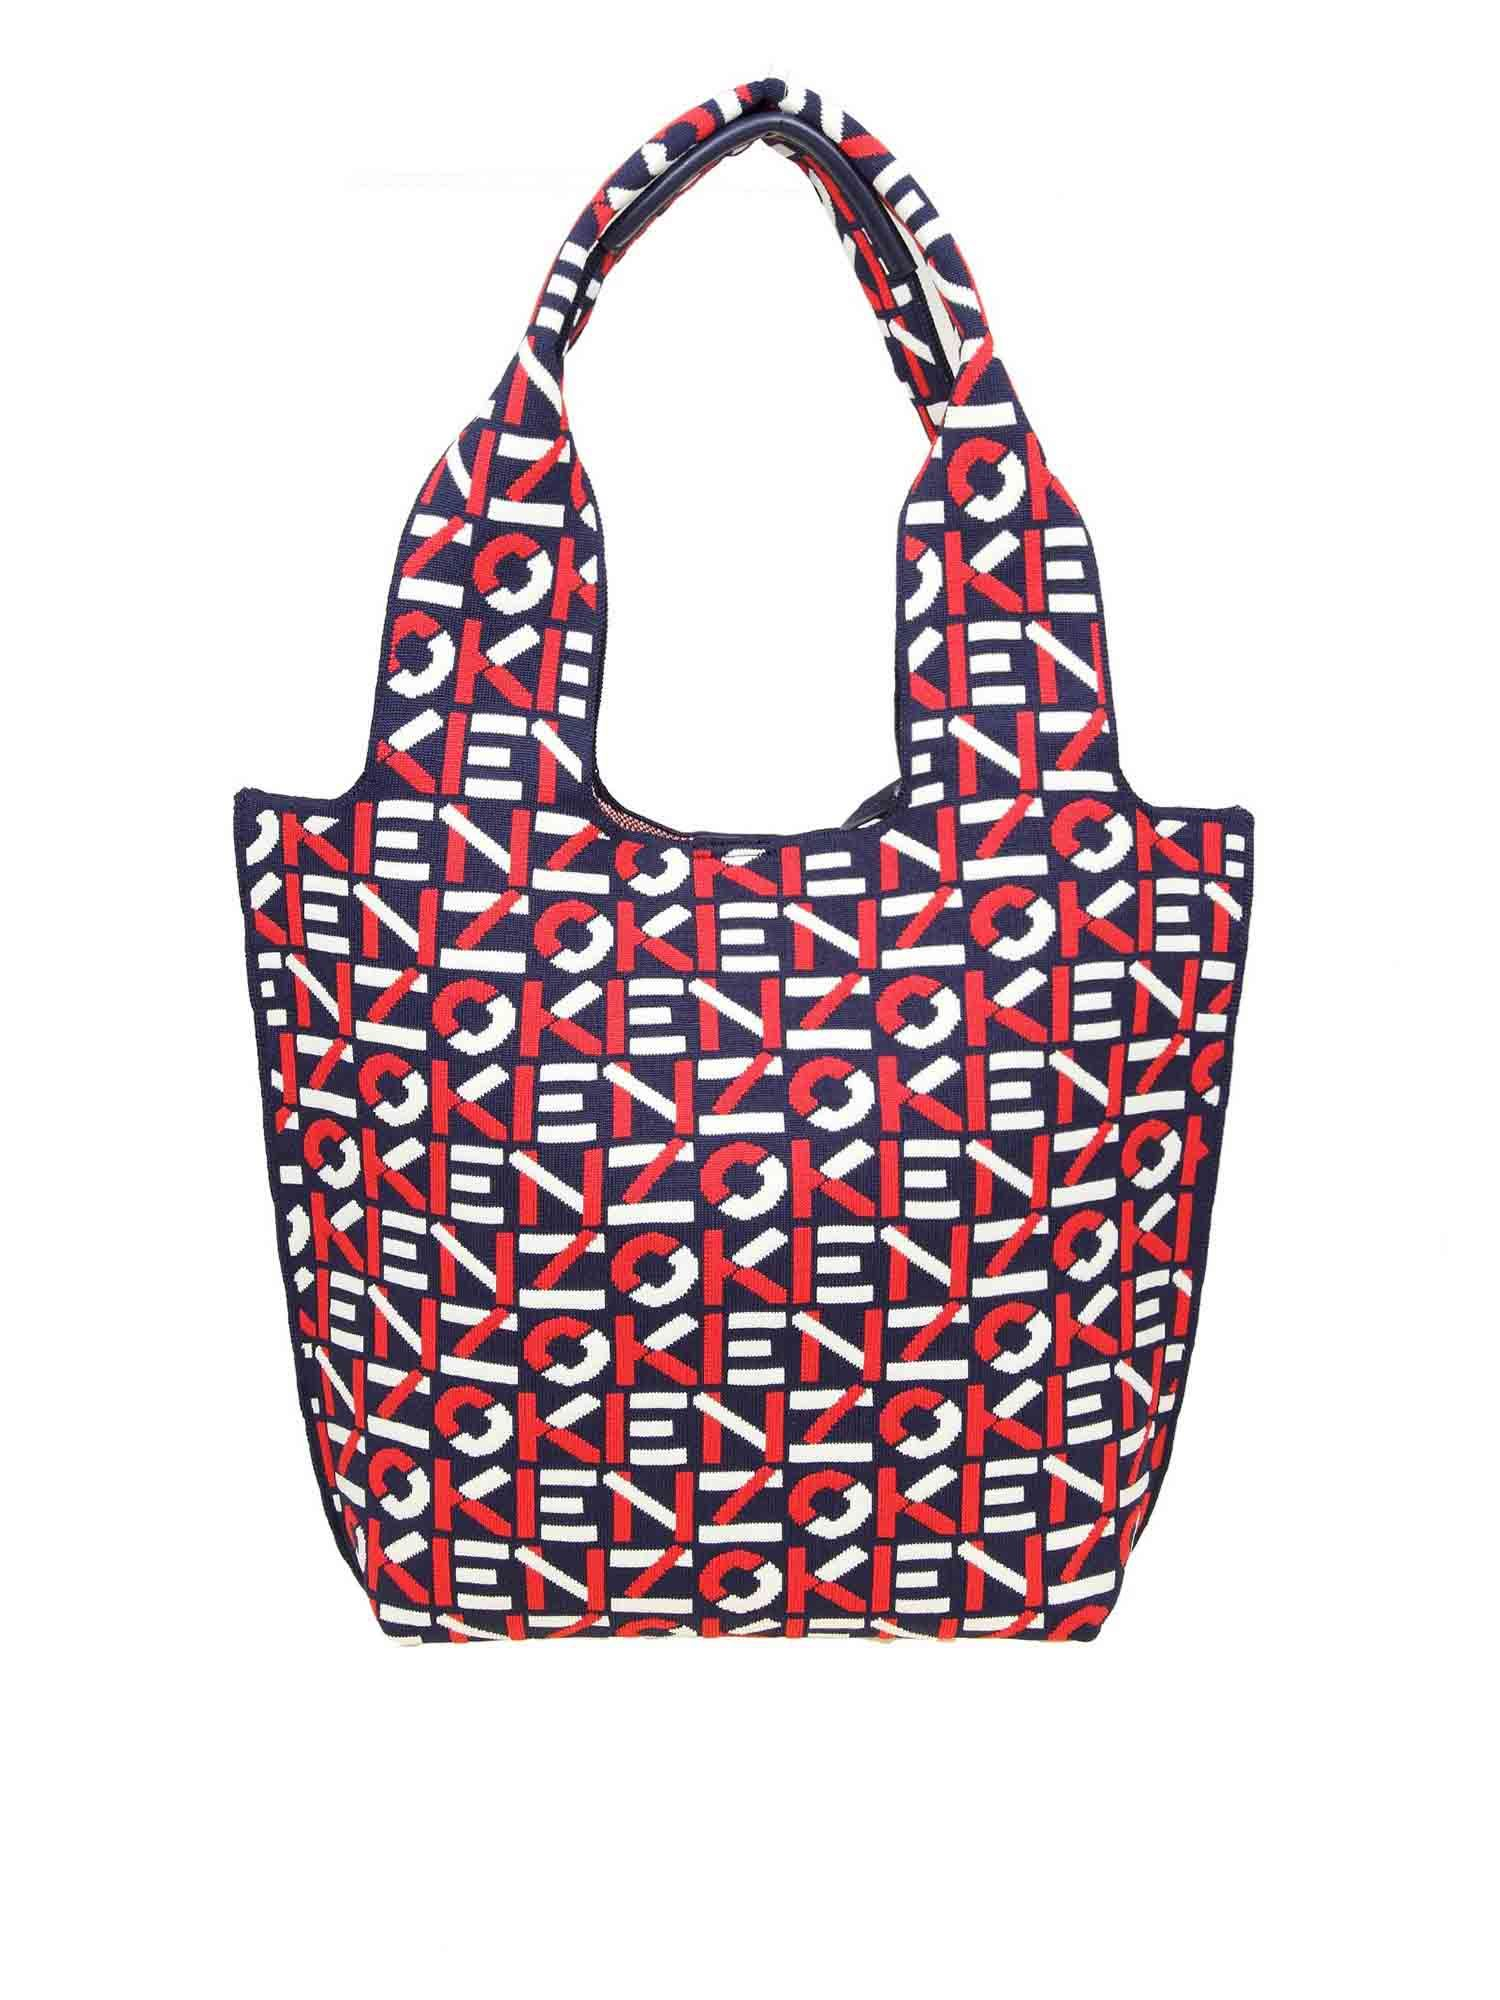 Kenzo MONOGRAM SMALL TOTE BAG IN BLUE AND RED